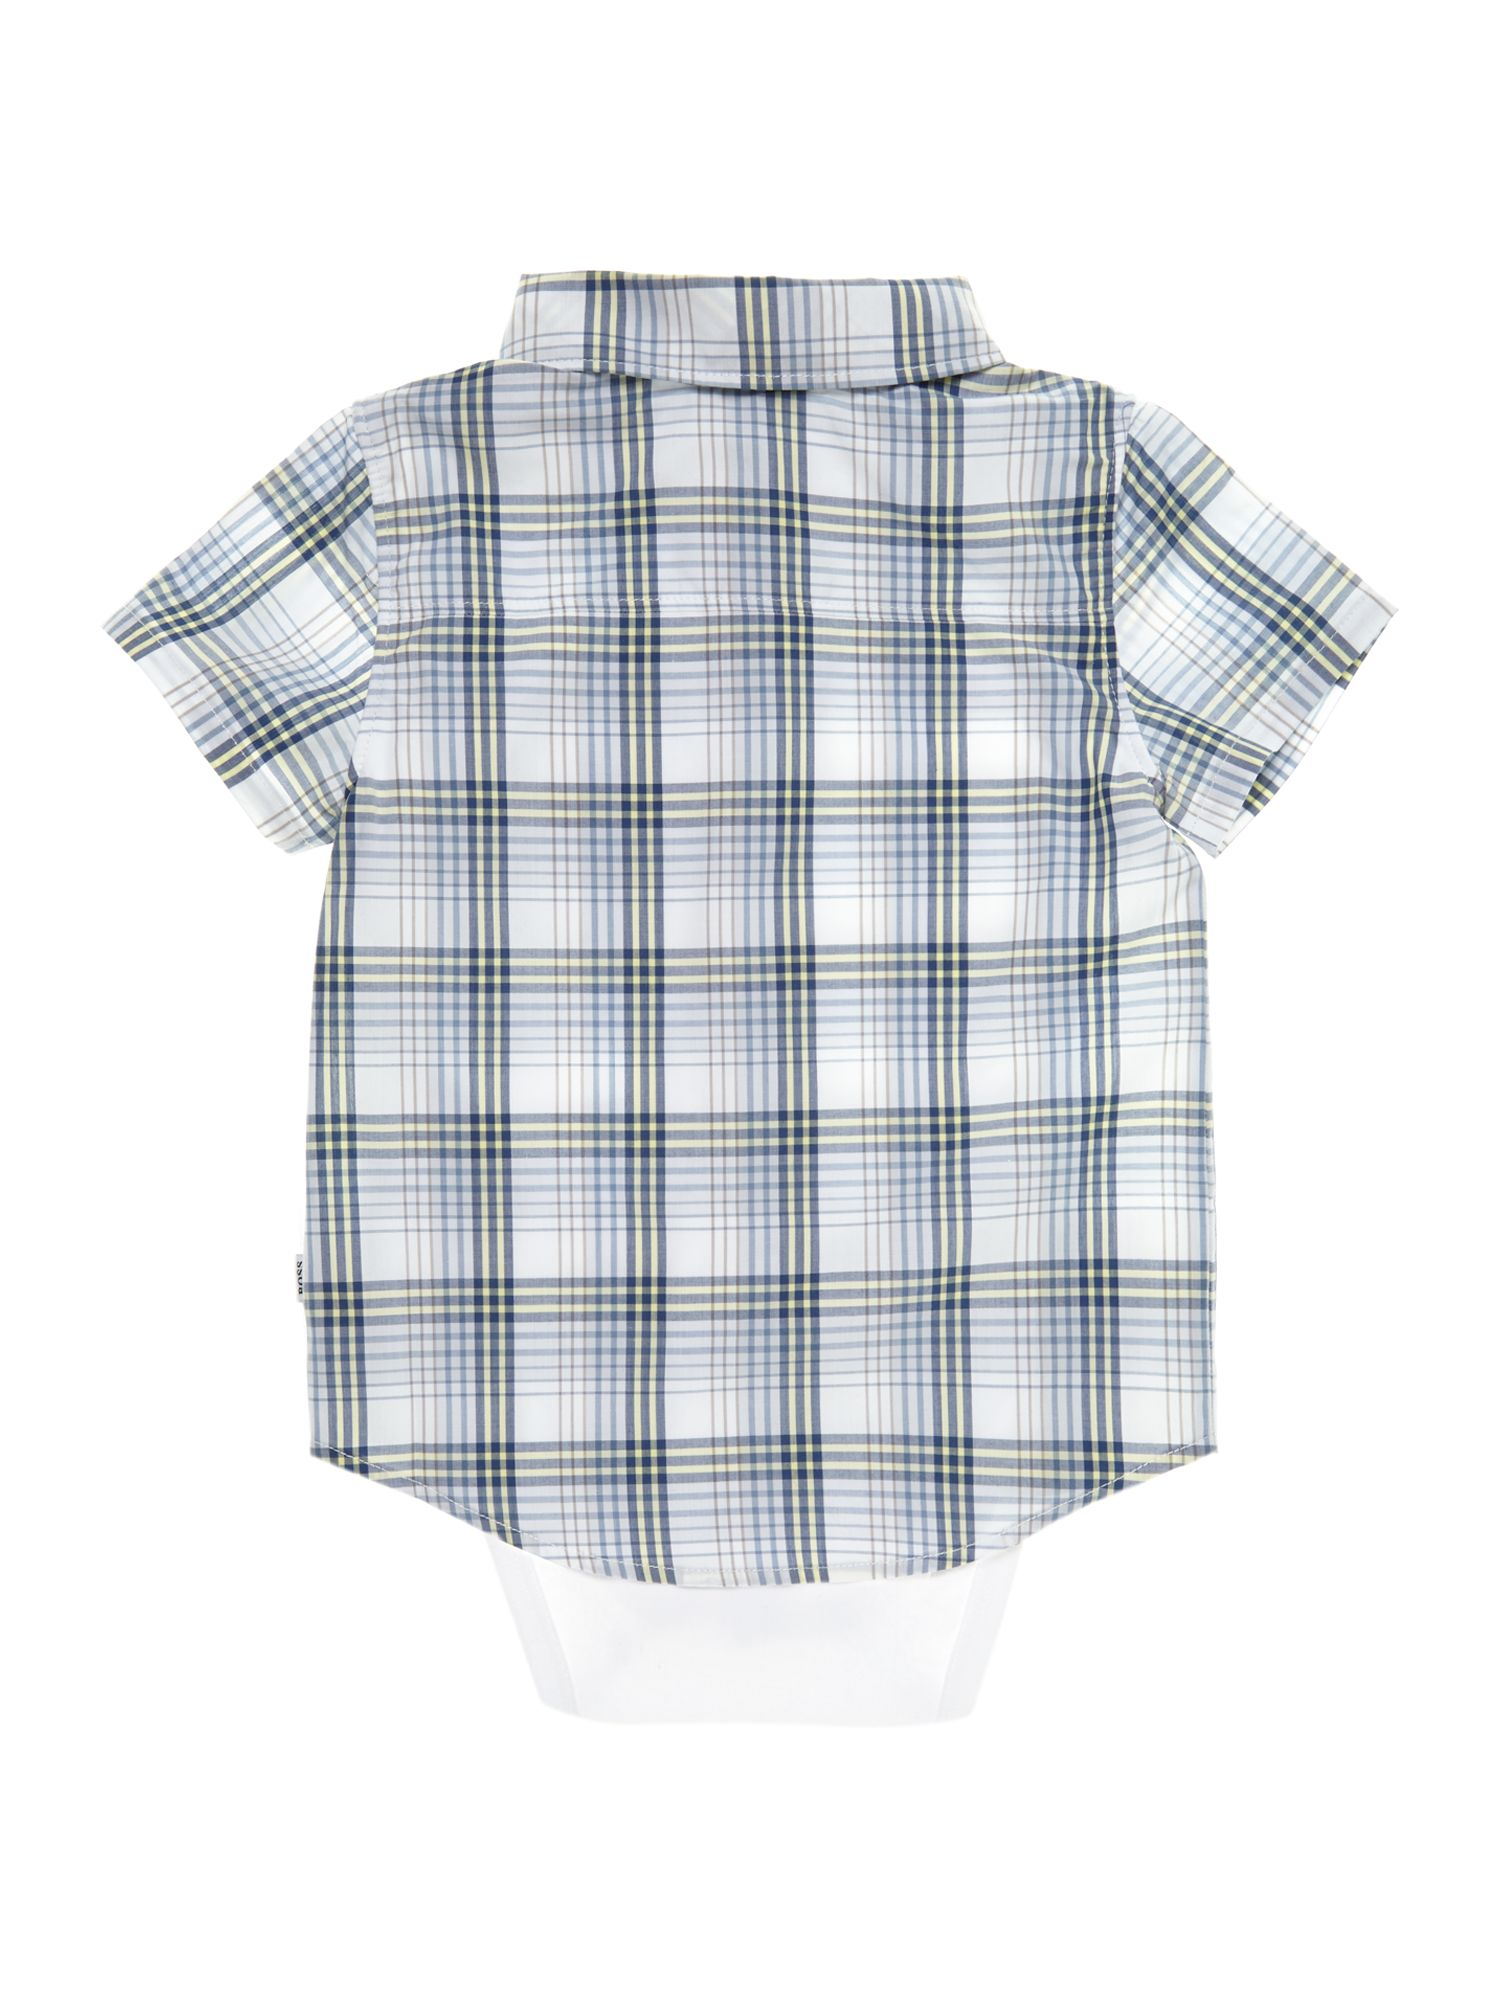 Baby boys jersey and poplin bodysuit